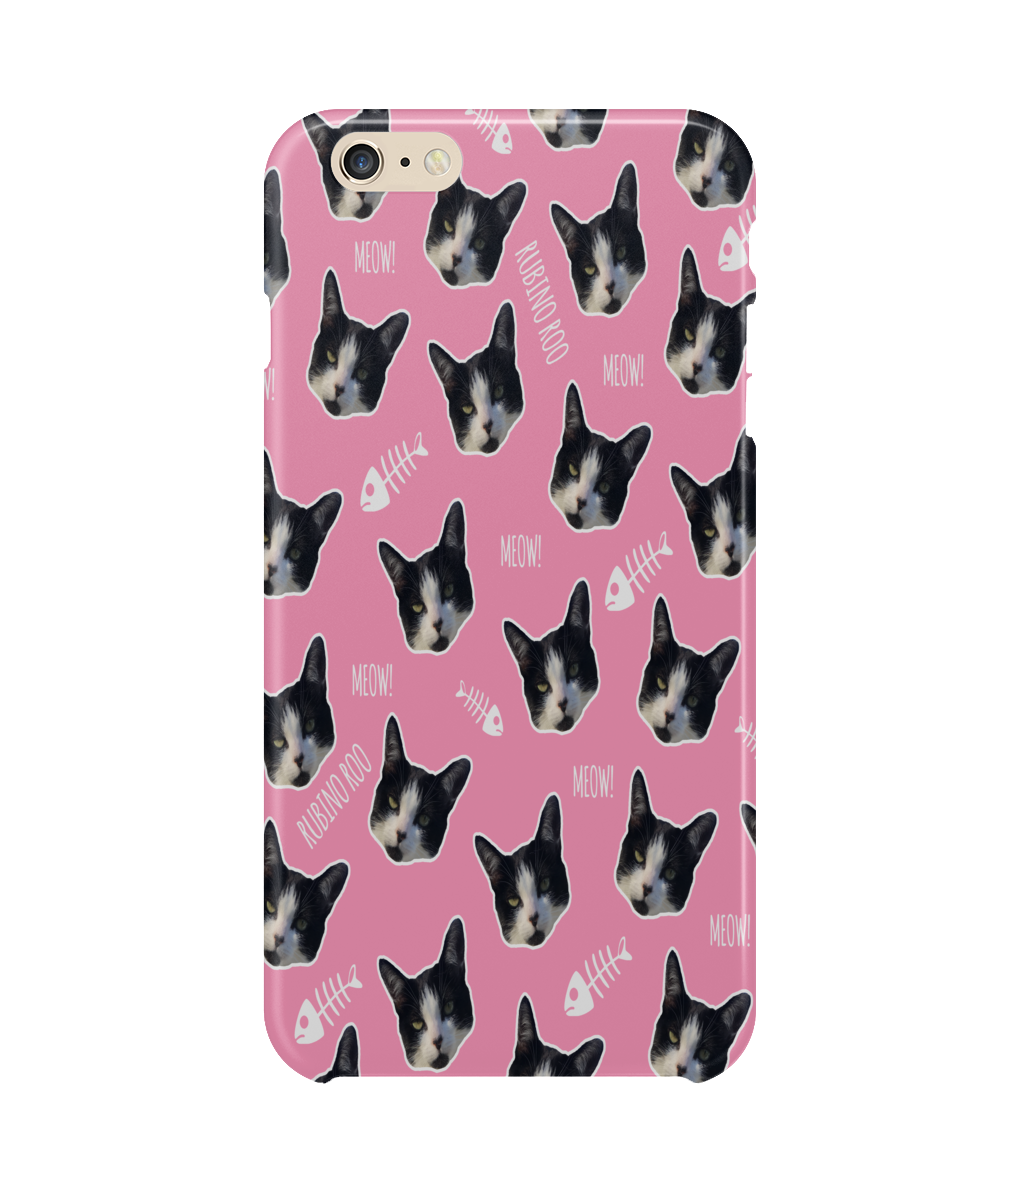 Personalised Furry Friends Phone Case - iPhone